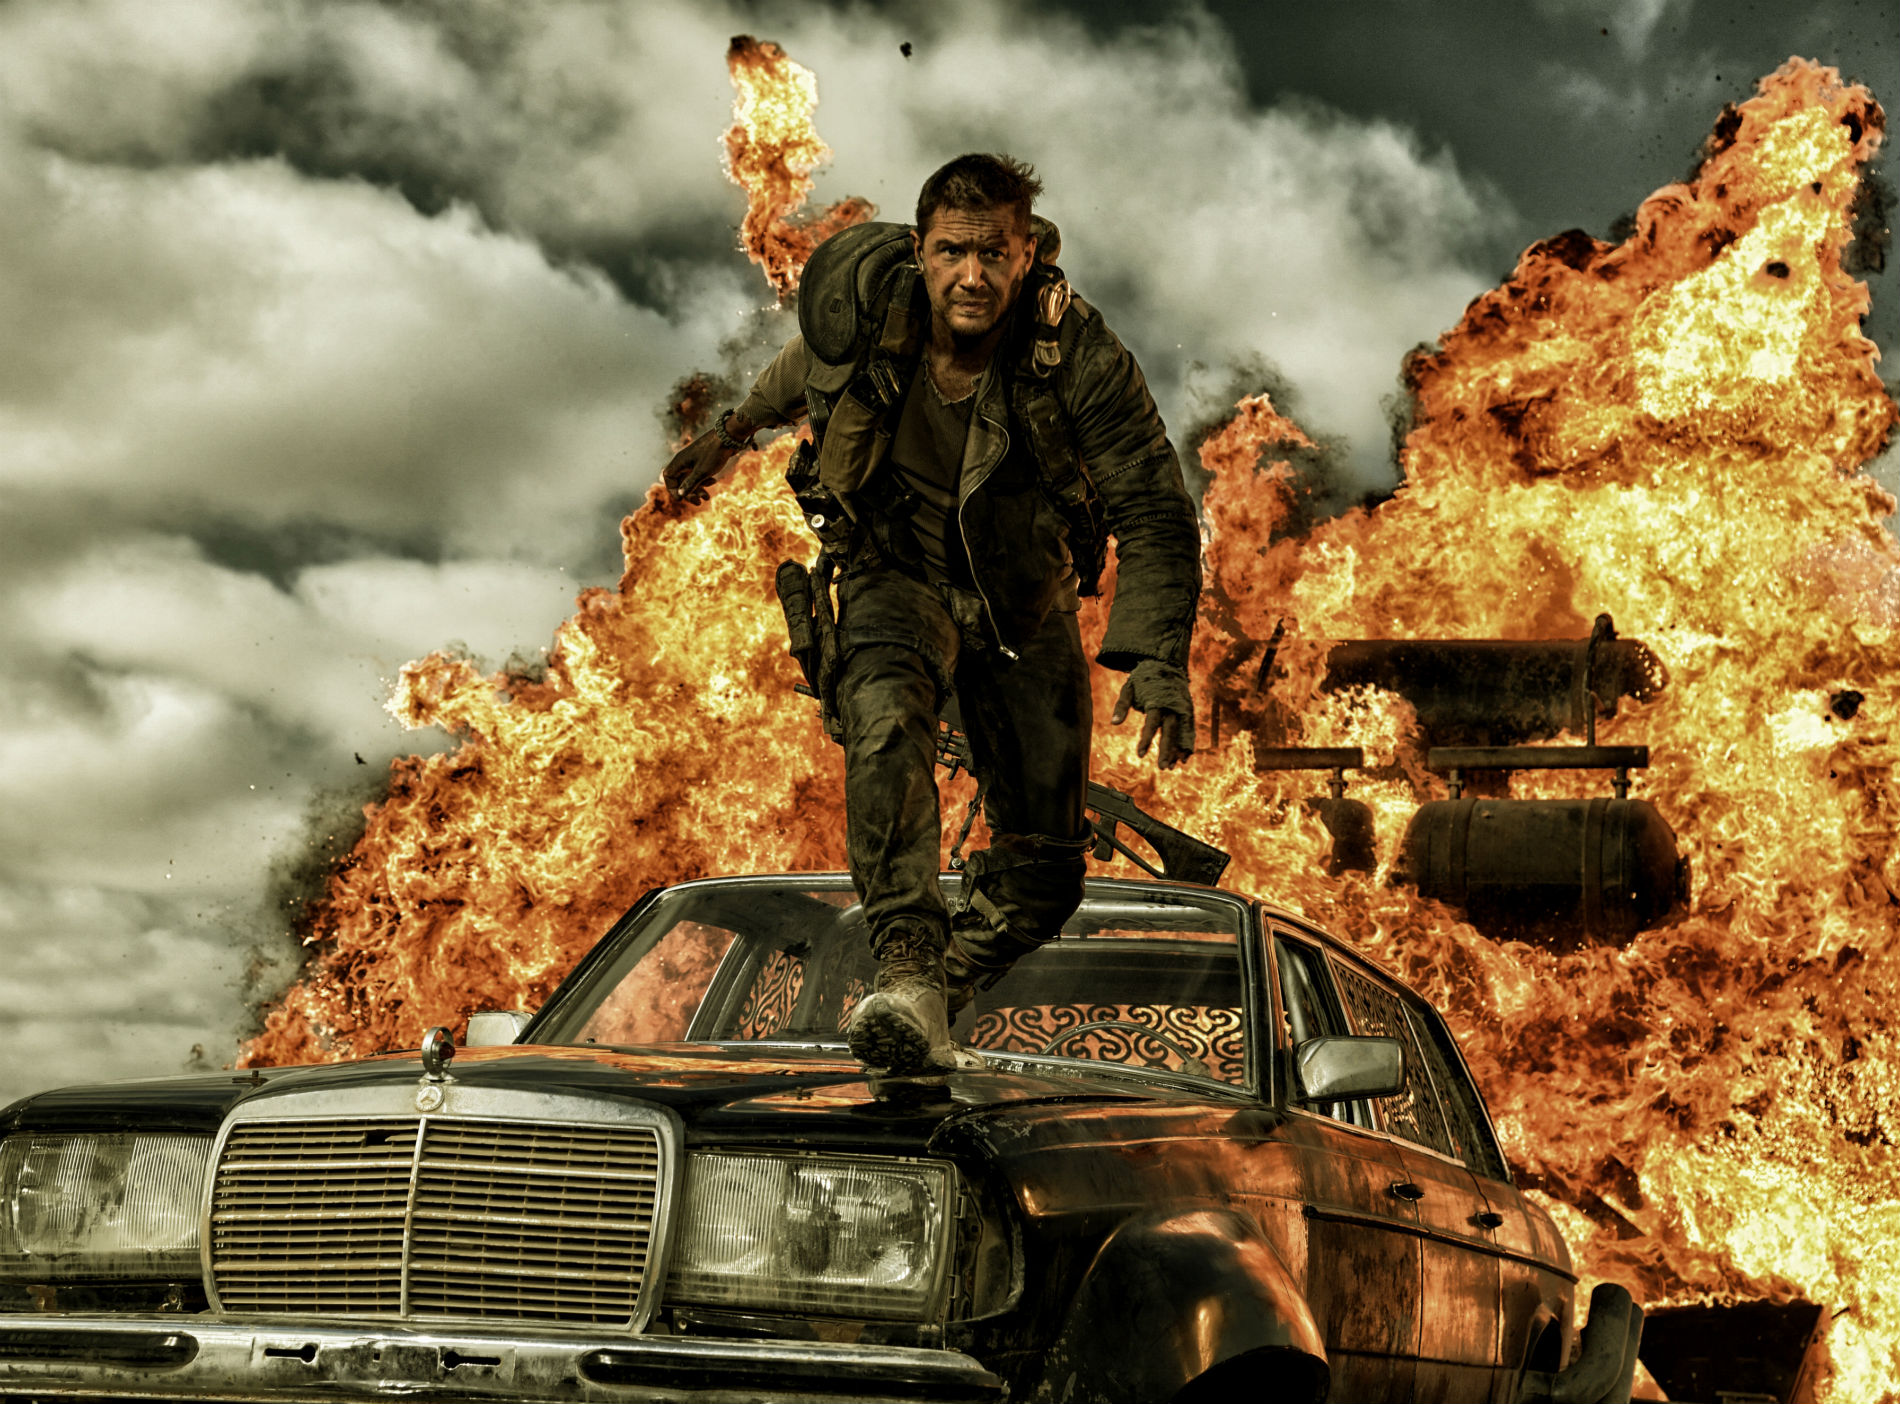 mad max fury road tom hardy explosion car